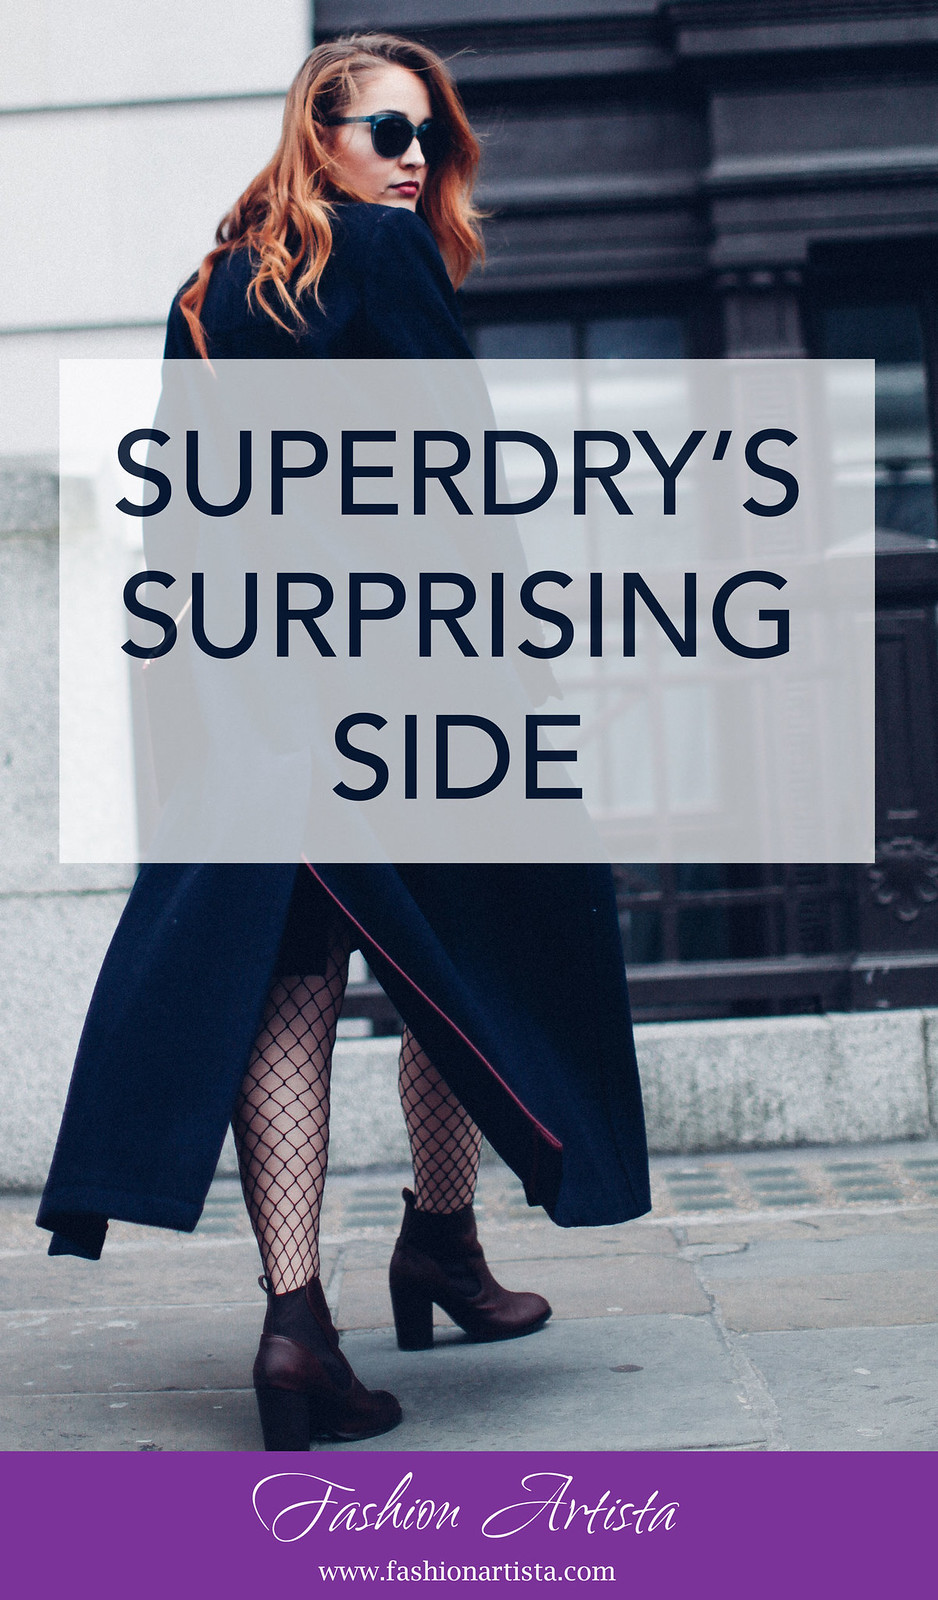 surprising side of superdry brand - www.fashionartista.com